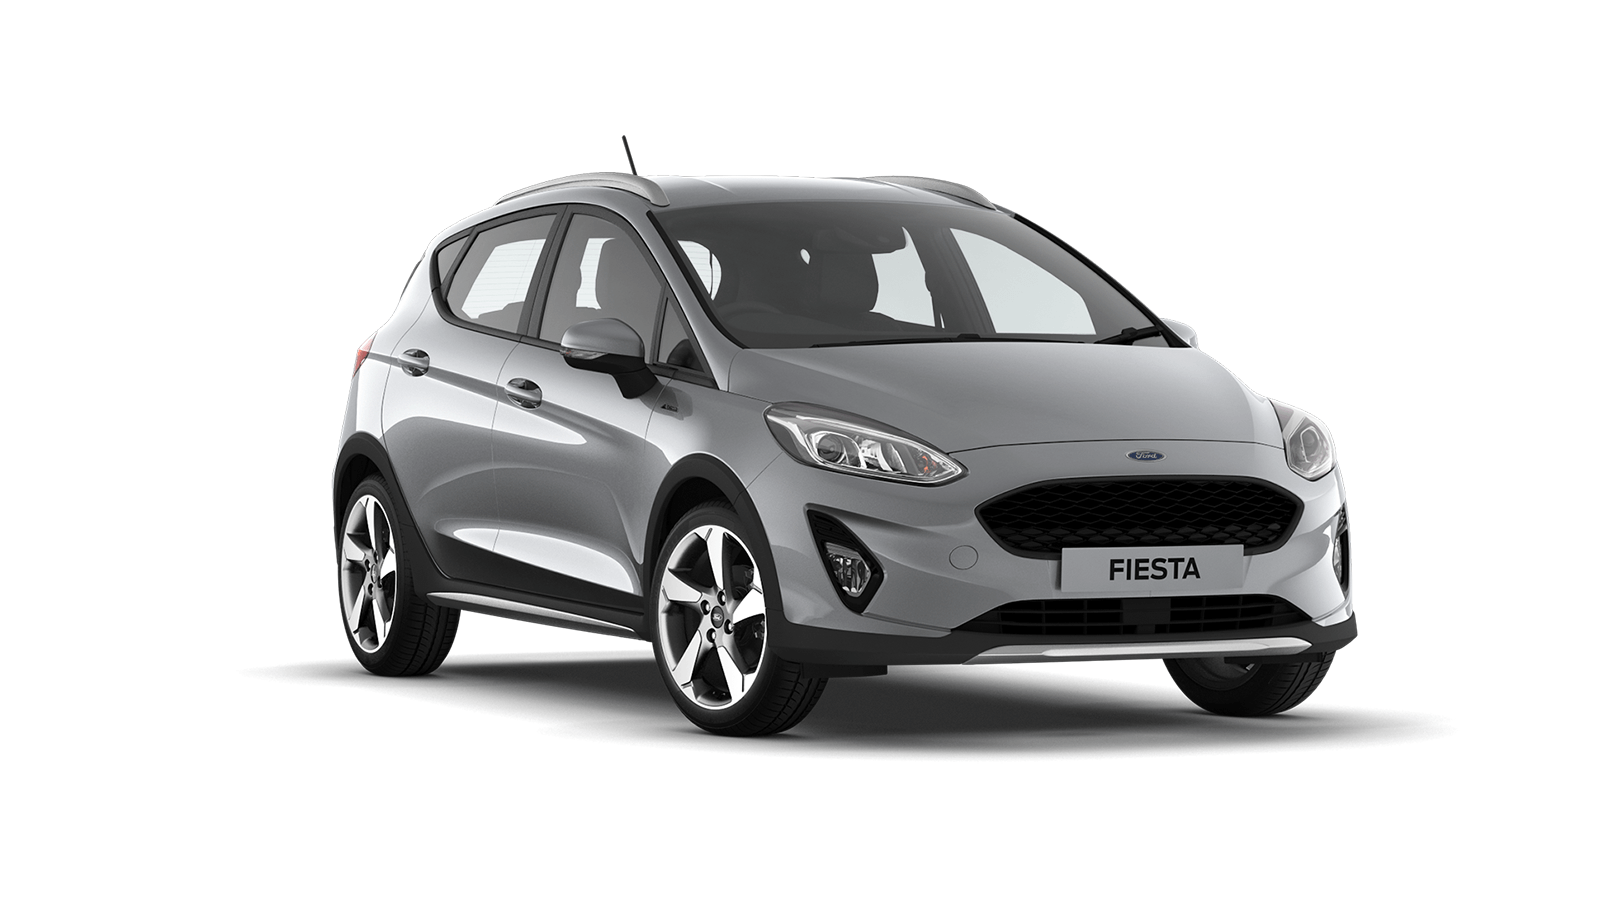 https://www.dealerinternet.co.uk/images/FIESTA%20B299/2019/5%20Door/ActiveX/MOONDUST-SILVER.png